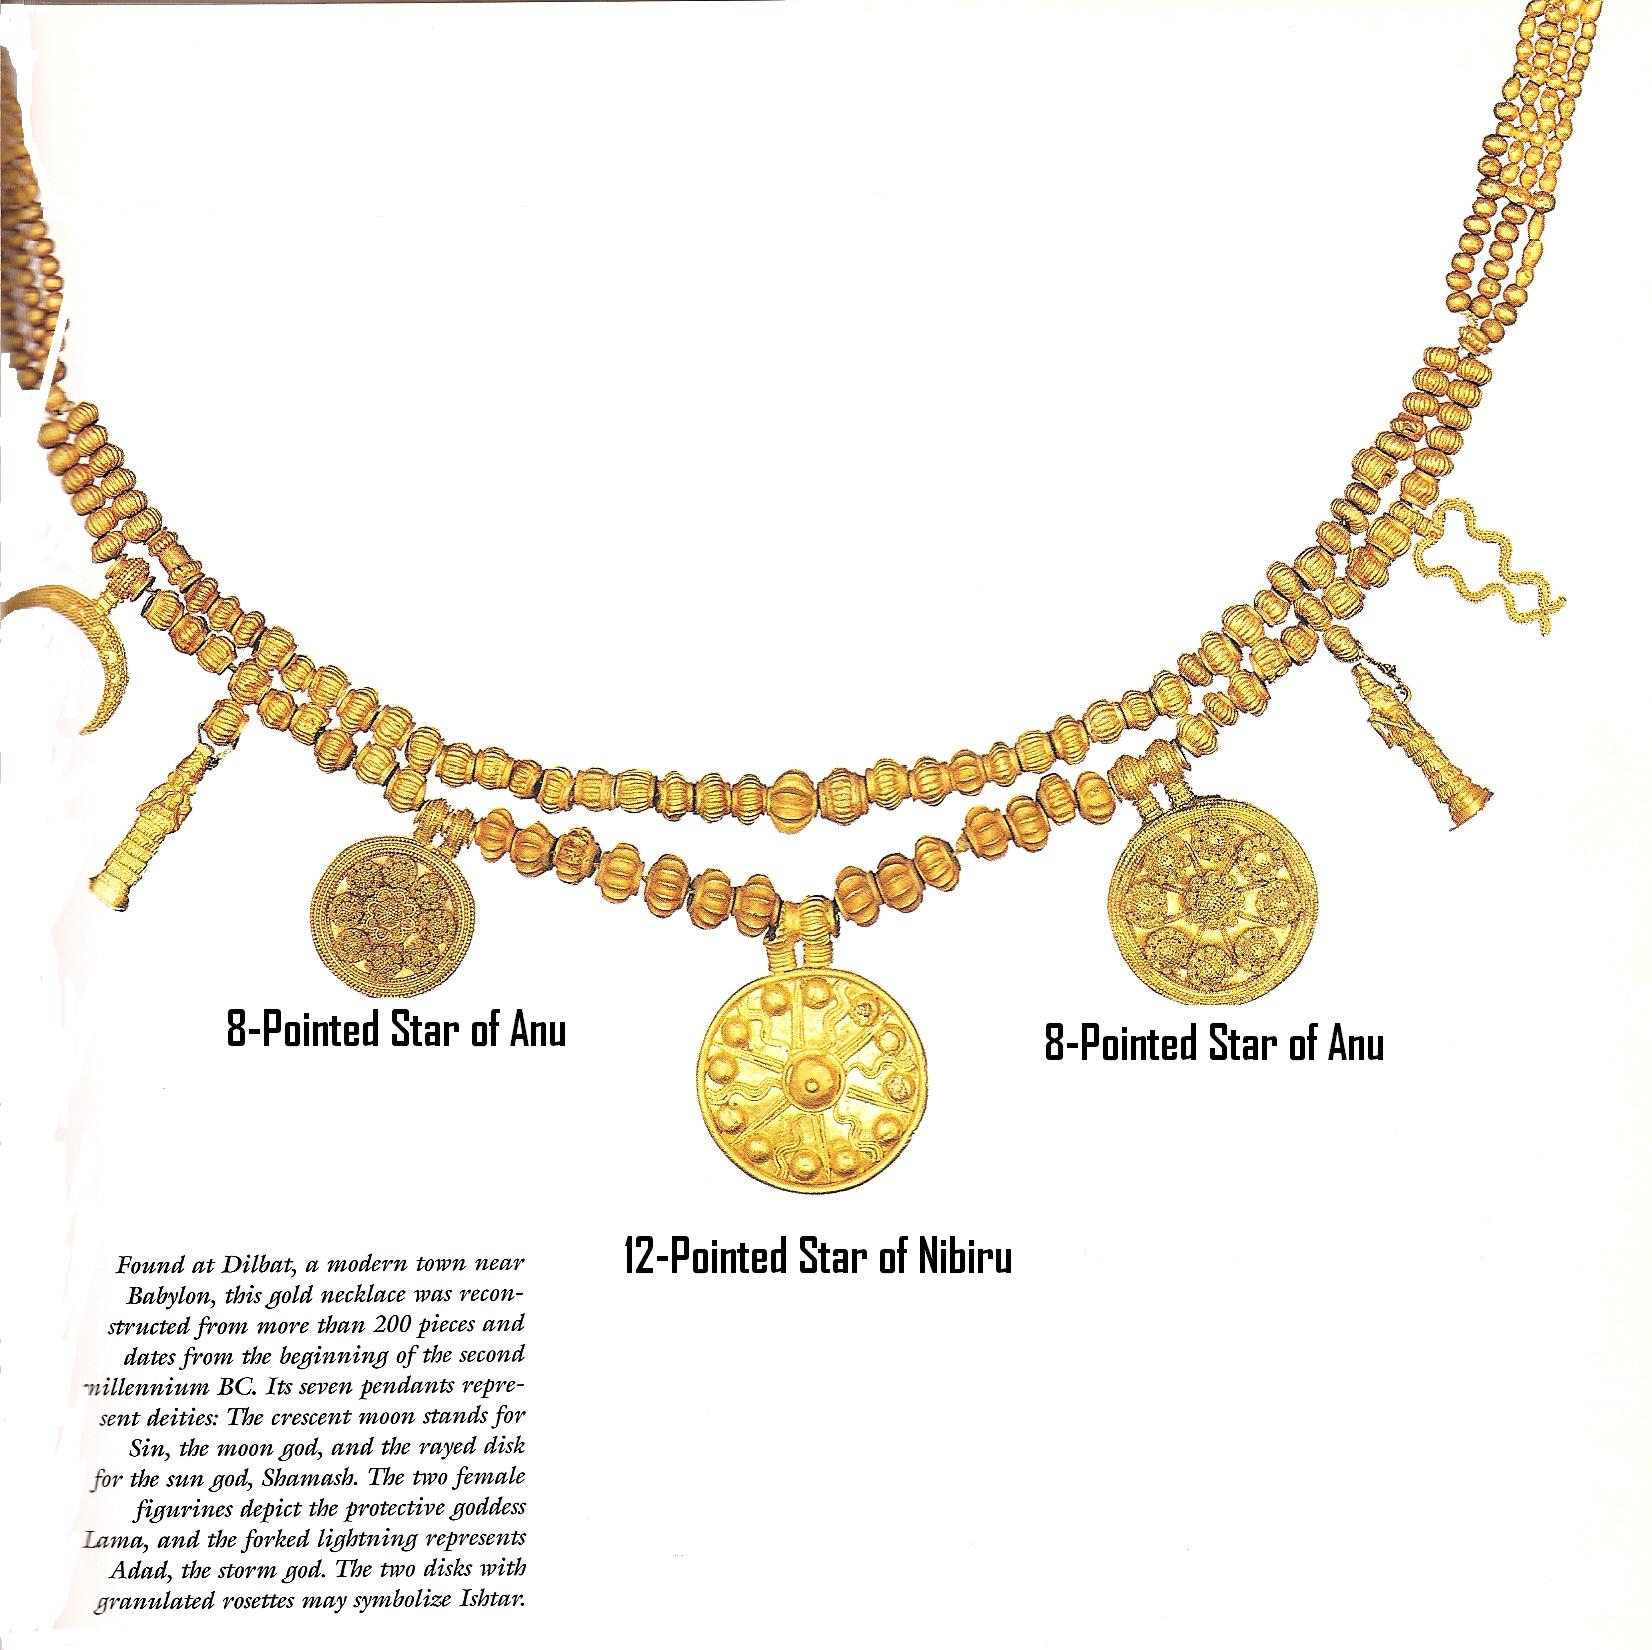 6d - 2,000 B.C. artefact discovered near Babylon, Nibiru symbols decorate the necklace, 12-pointed star symbol of Nibiru